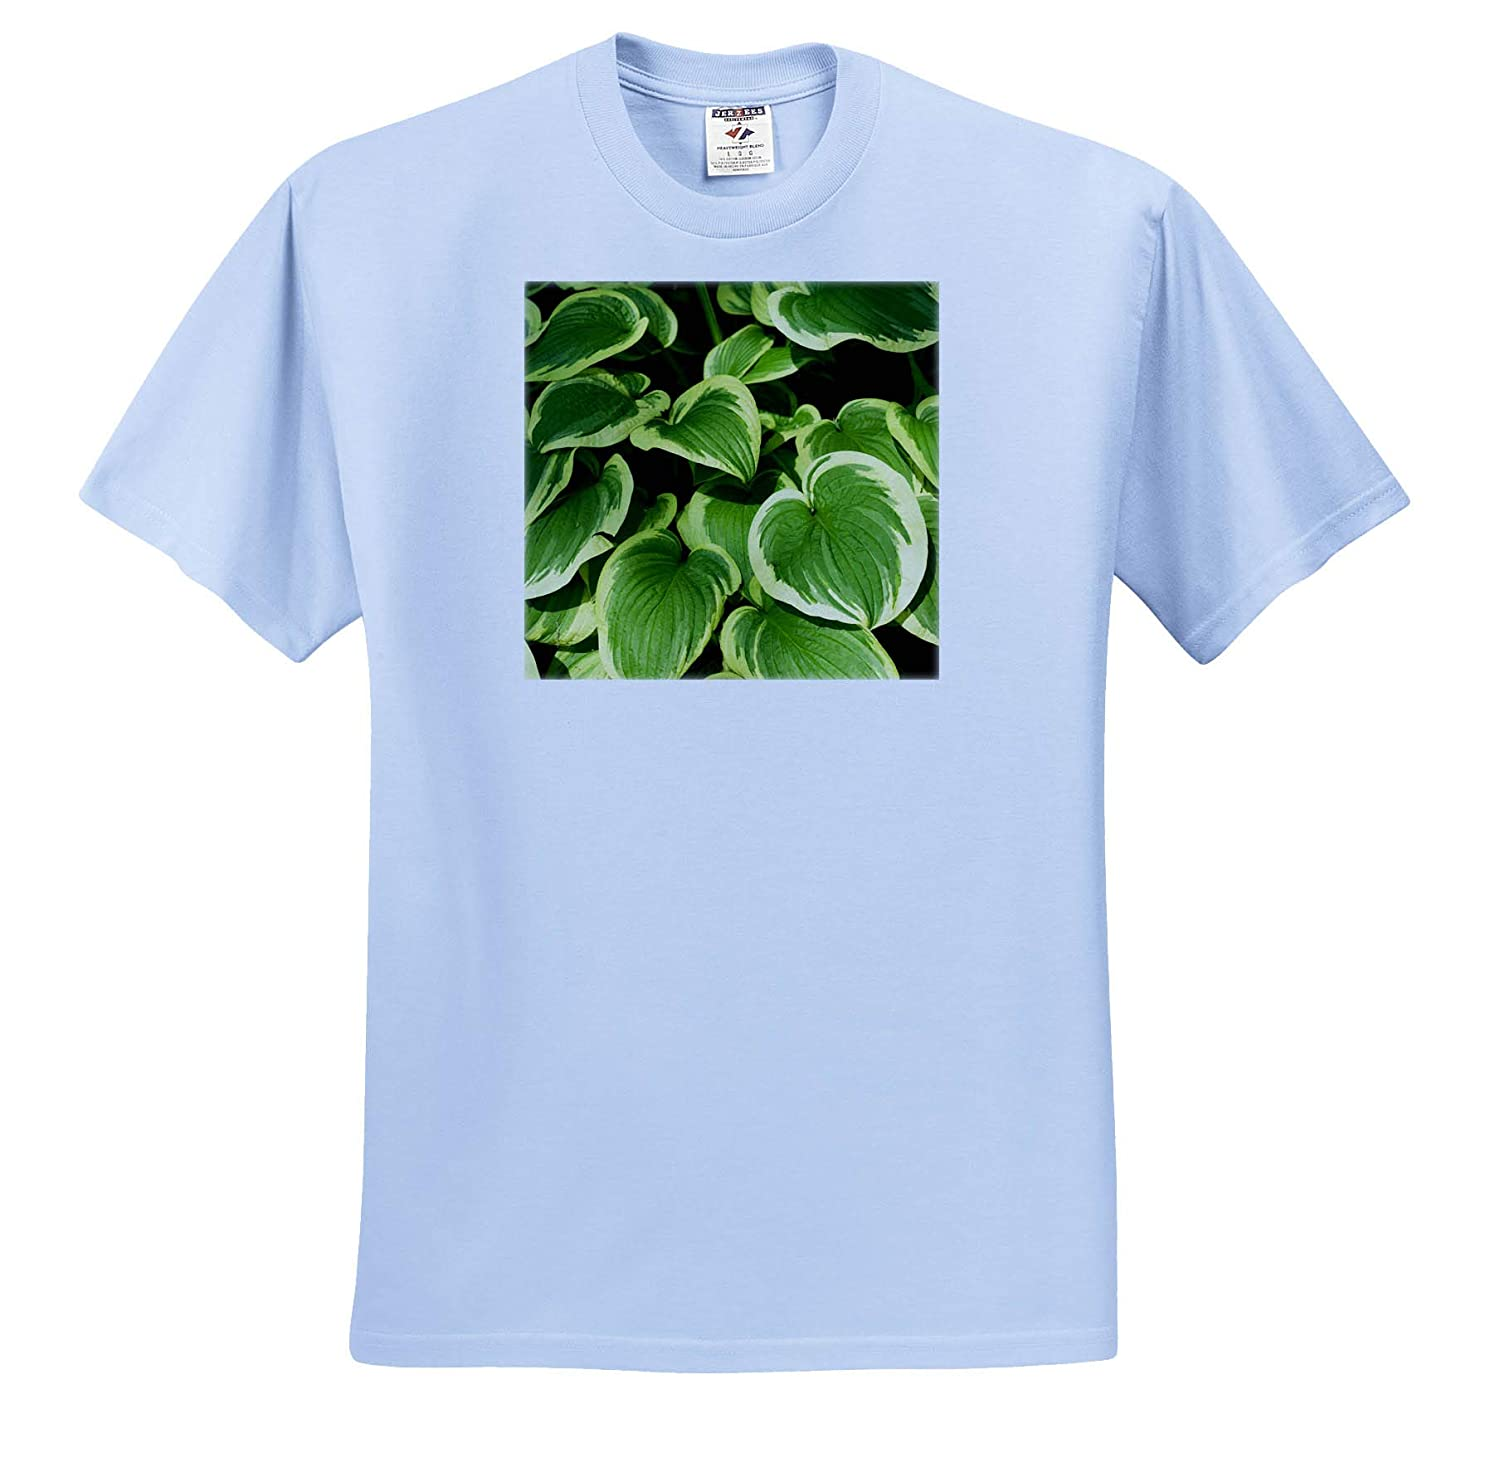 Green Leaves ts/_313042 3dRose Danita Delimont Quebec Plants Montreal Canada - Adult T-Shirt XL Botanical Garden